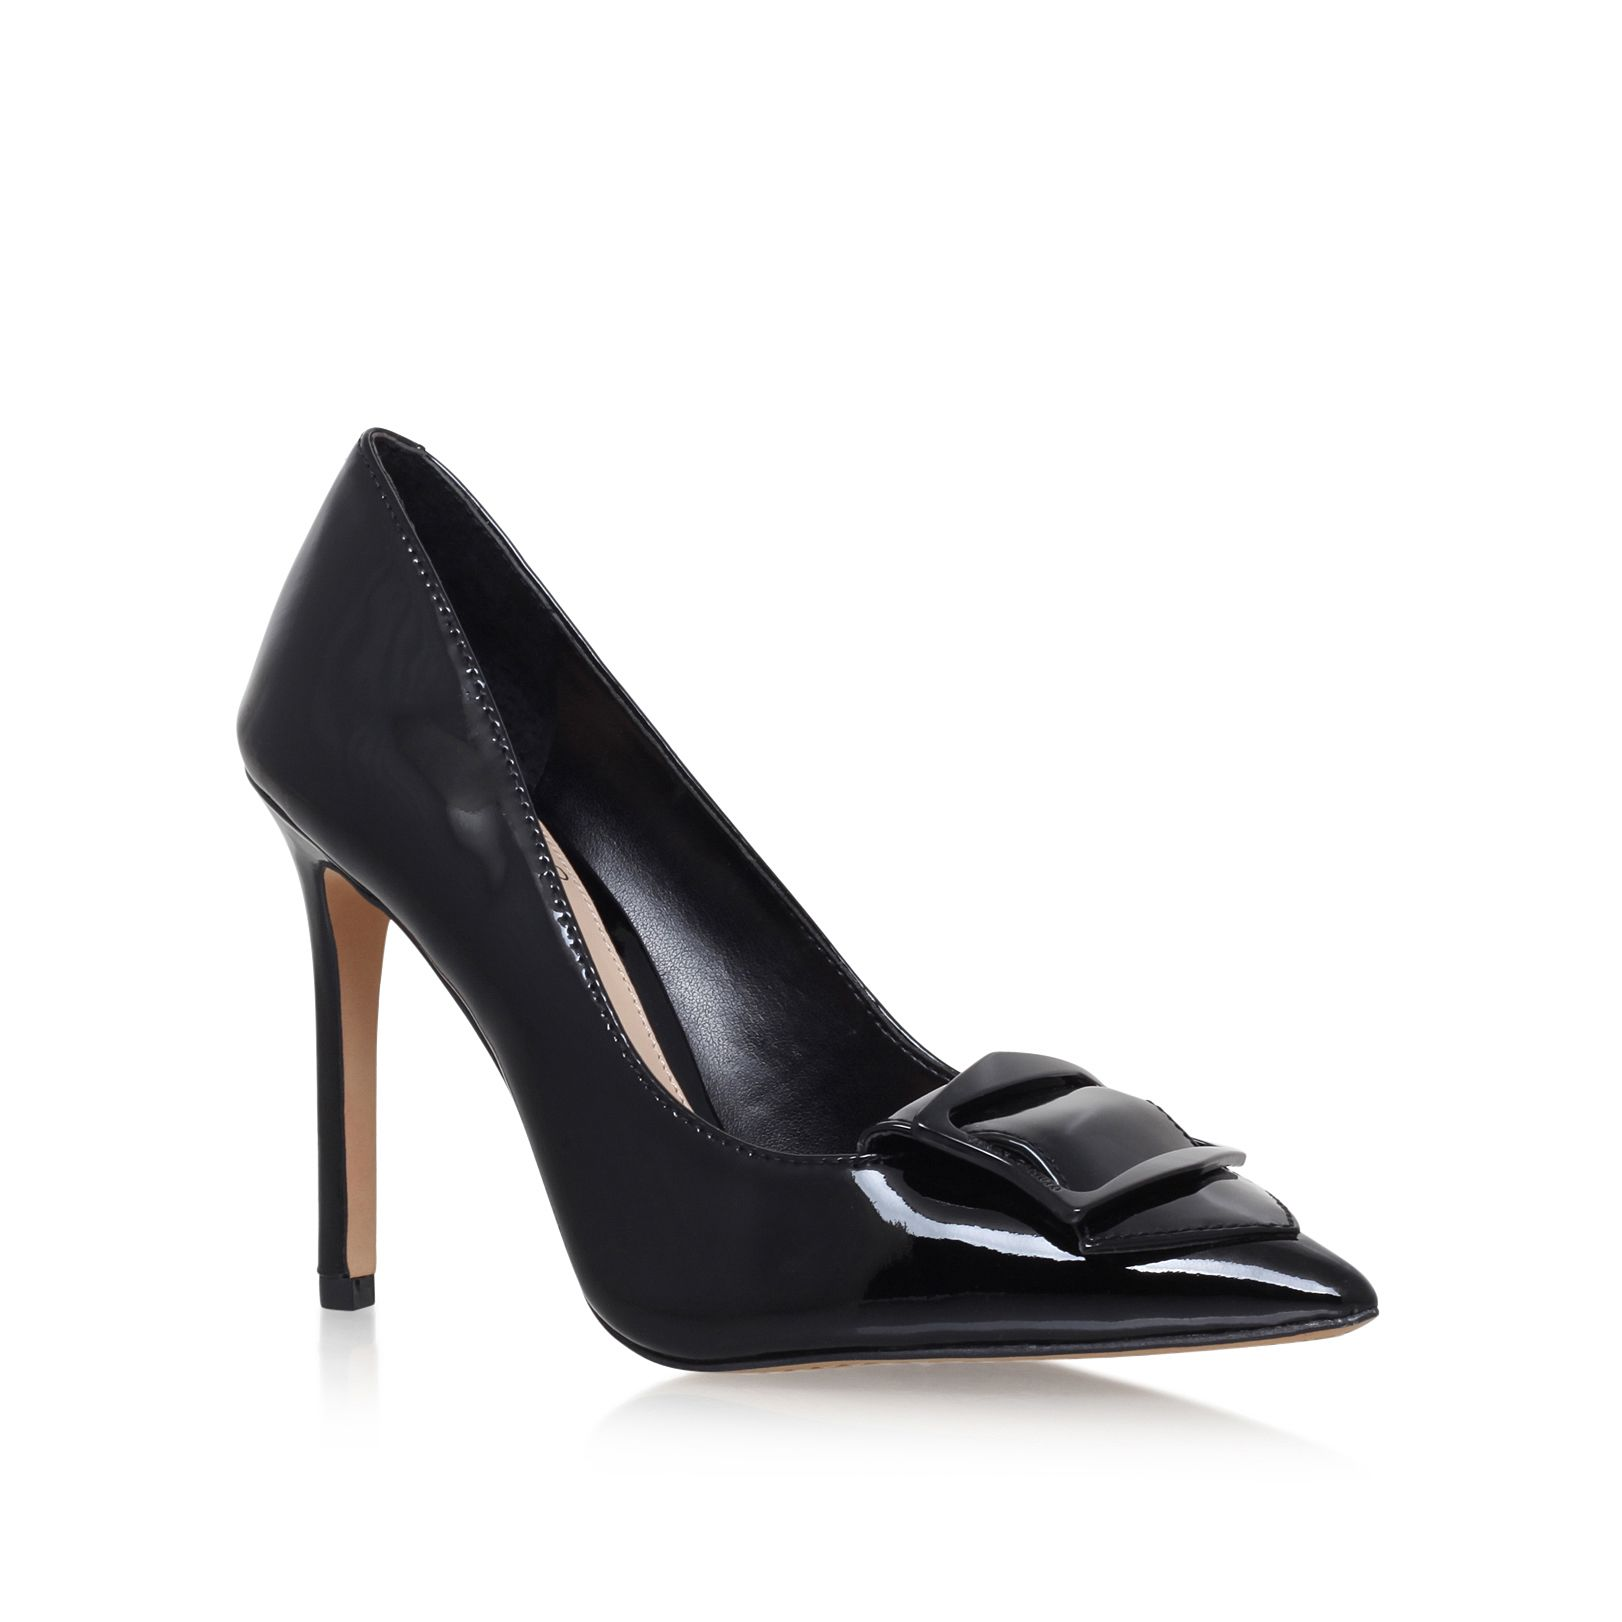 Vince Camuto Vince Camuto Nancita high heel court shoes, Black